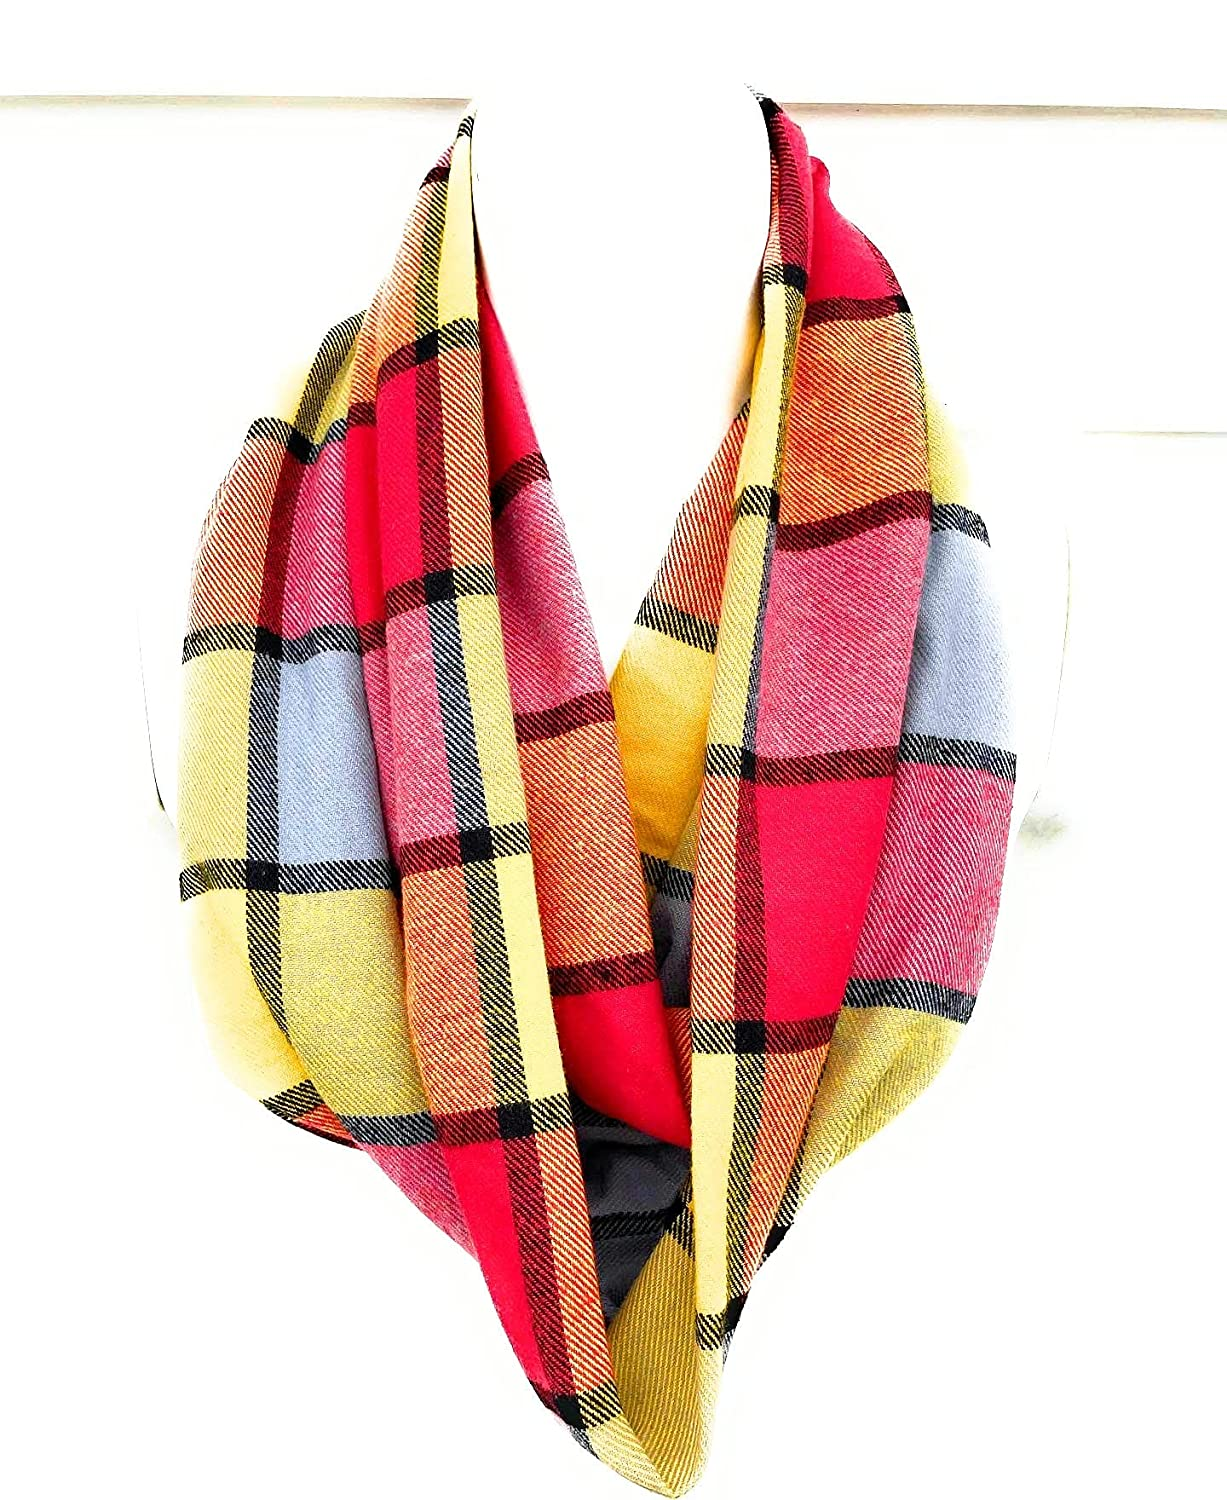 Special price for a limited time Fall Flannel Plaid Scarf Time sale Infinity